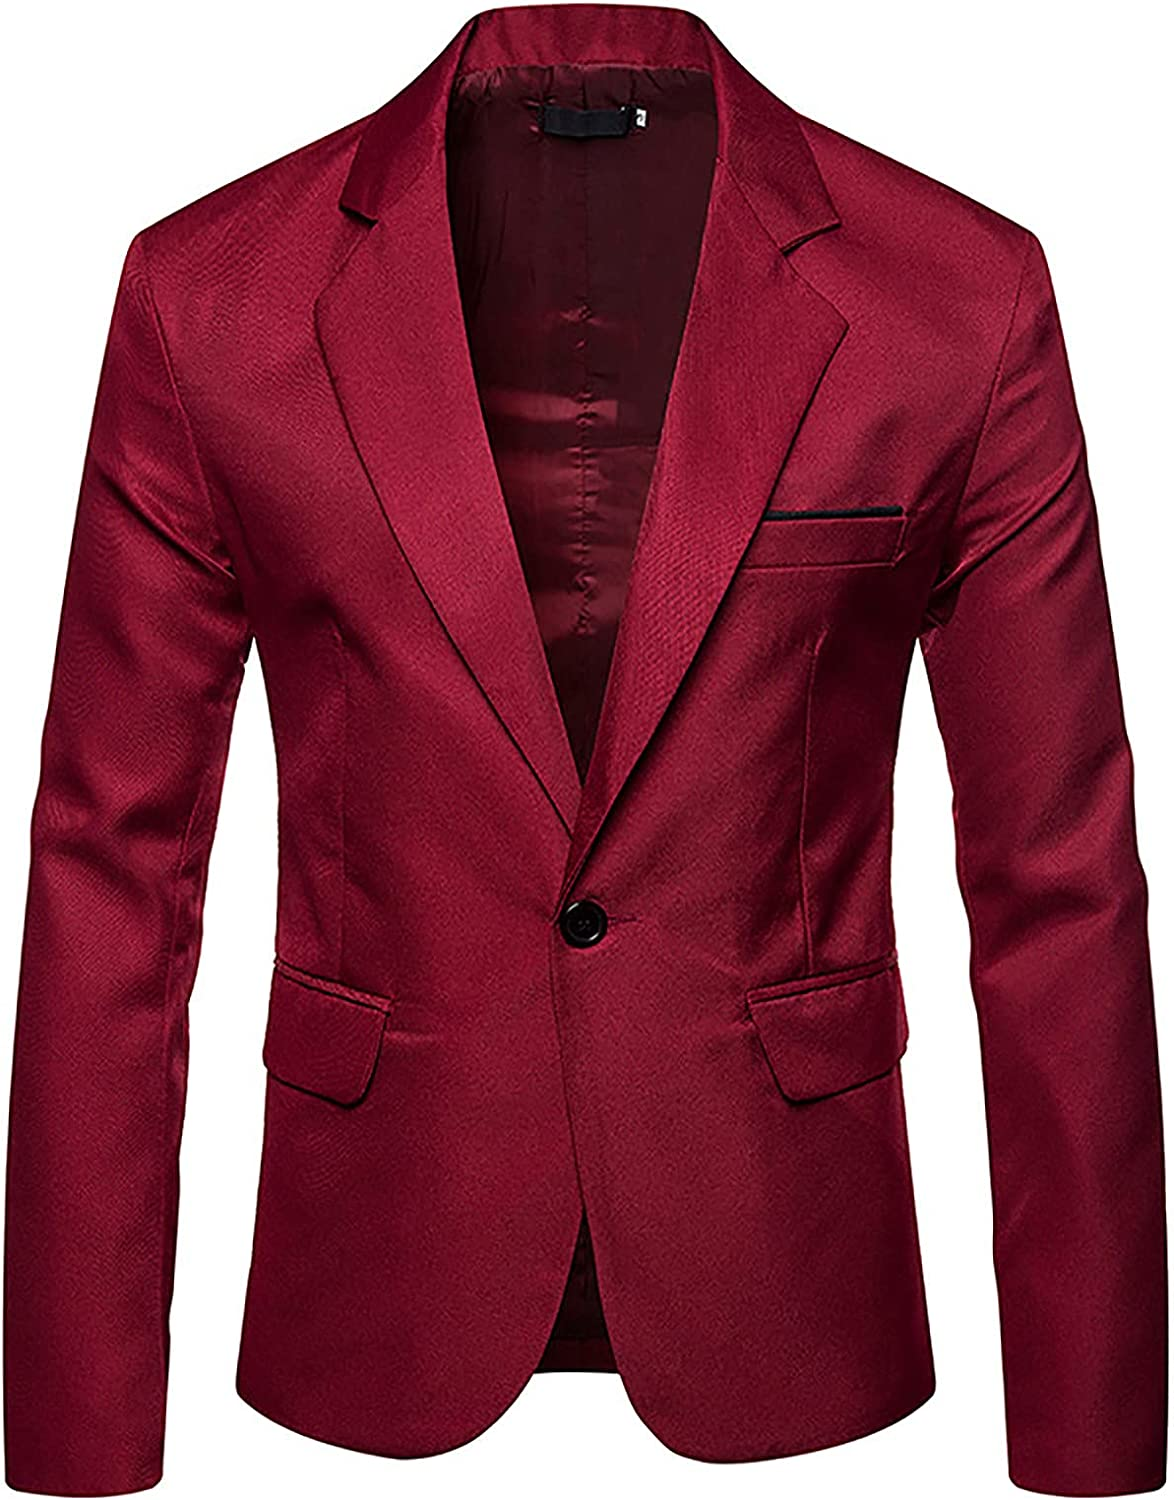 Bravetoshop Men's Fashion Single-Breasted Suit Jacket One Button Slim Fit Business Wedding Party Casual Blazer Jacket